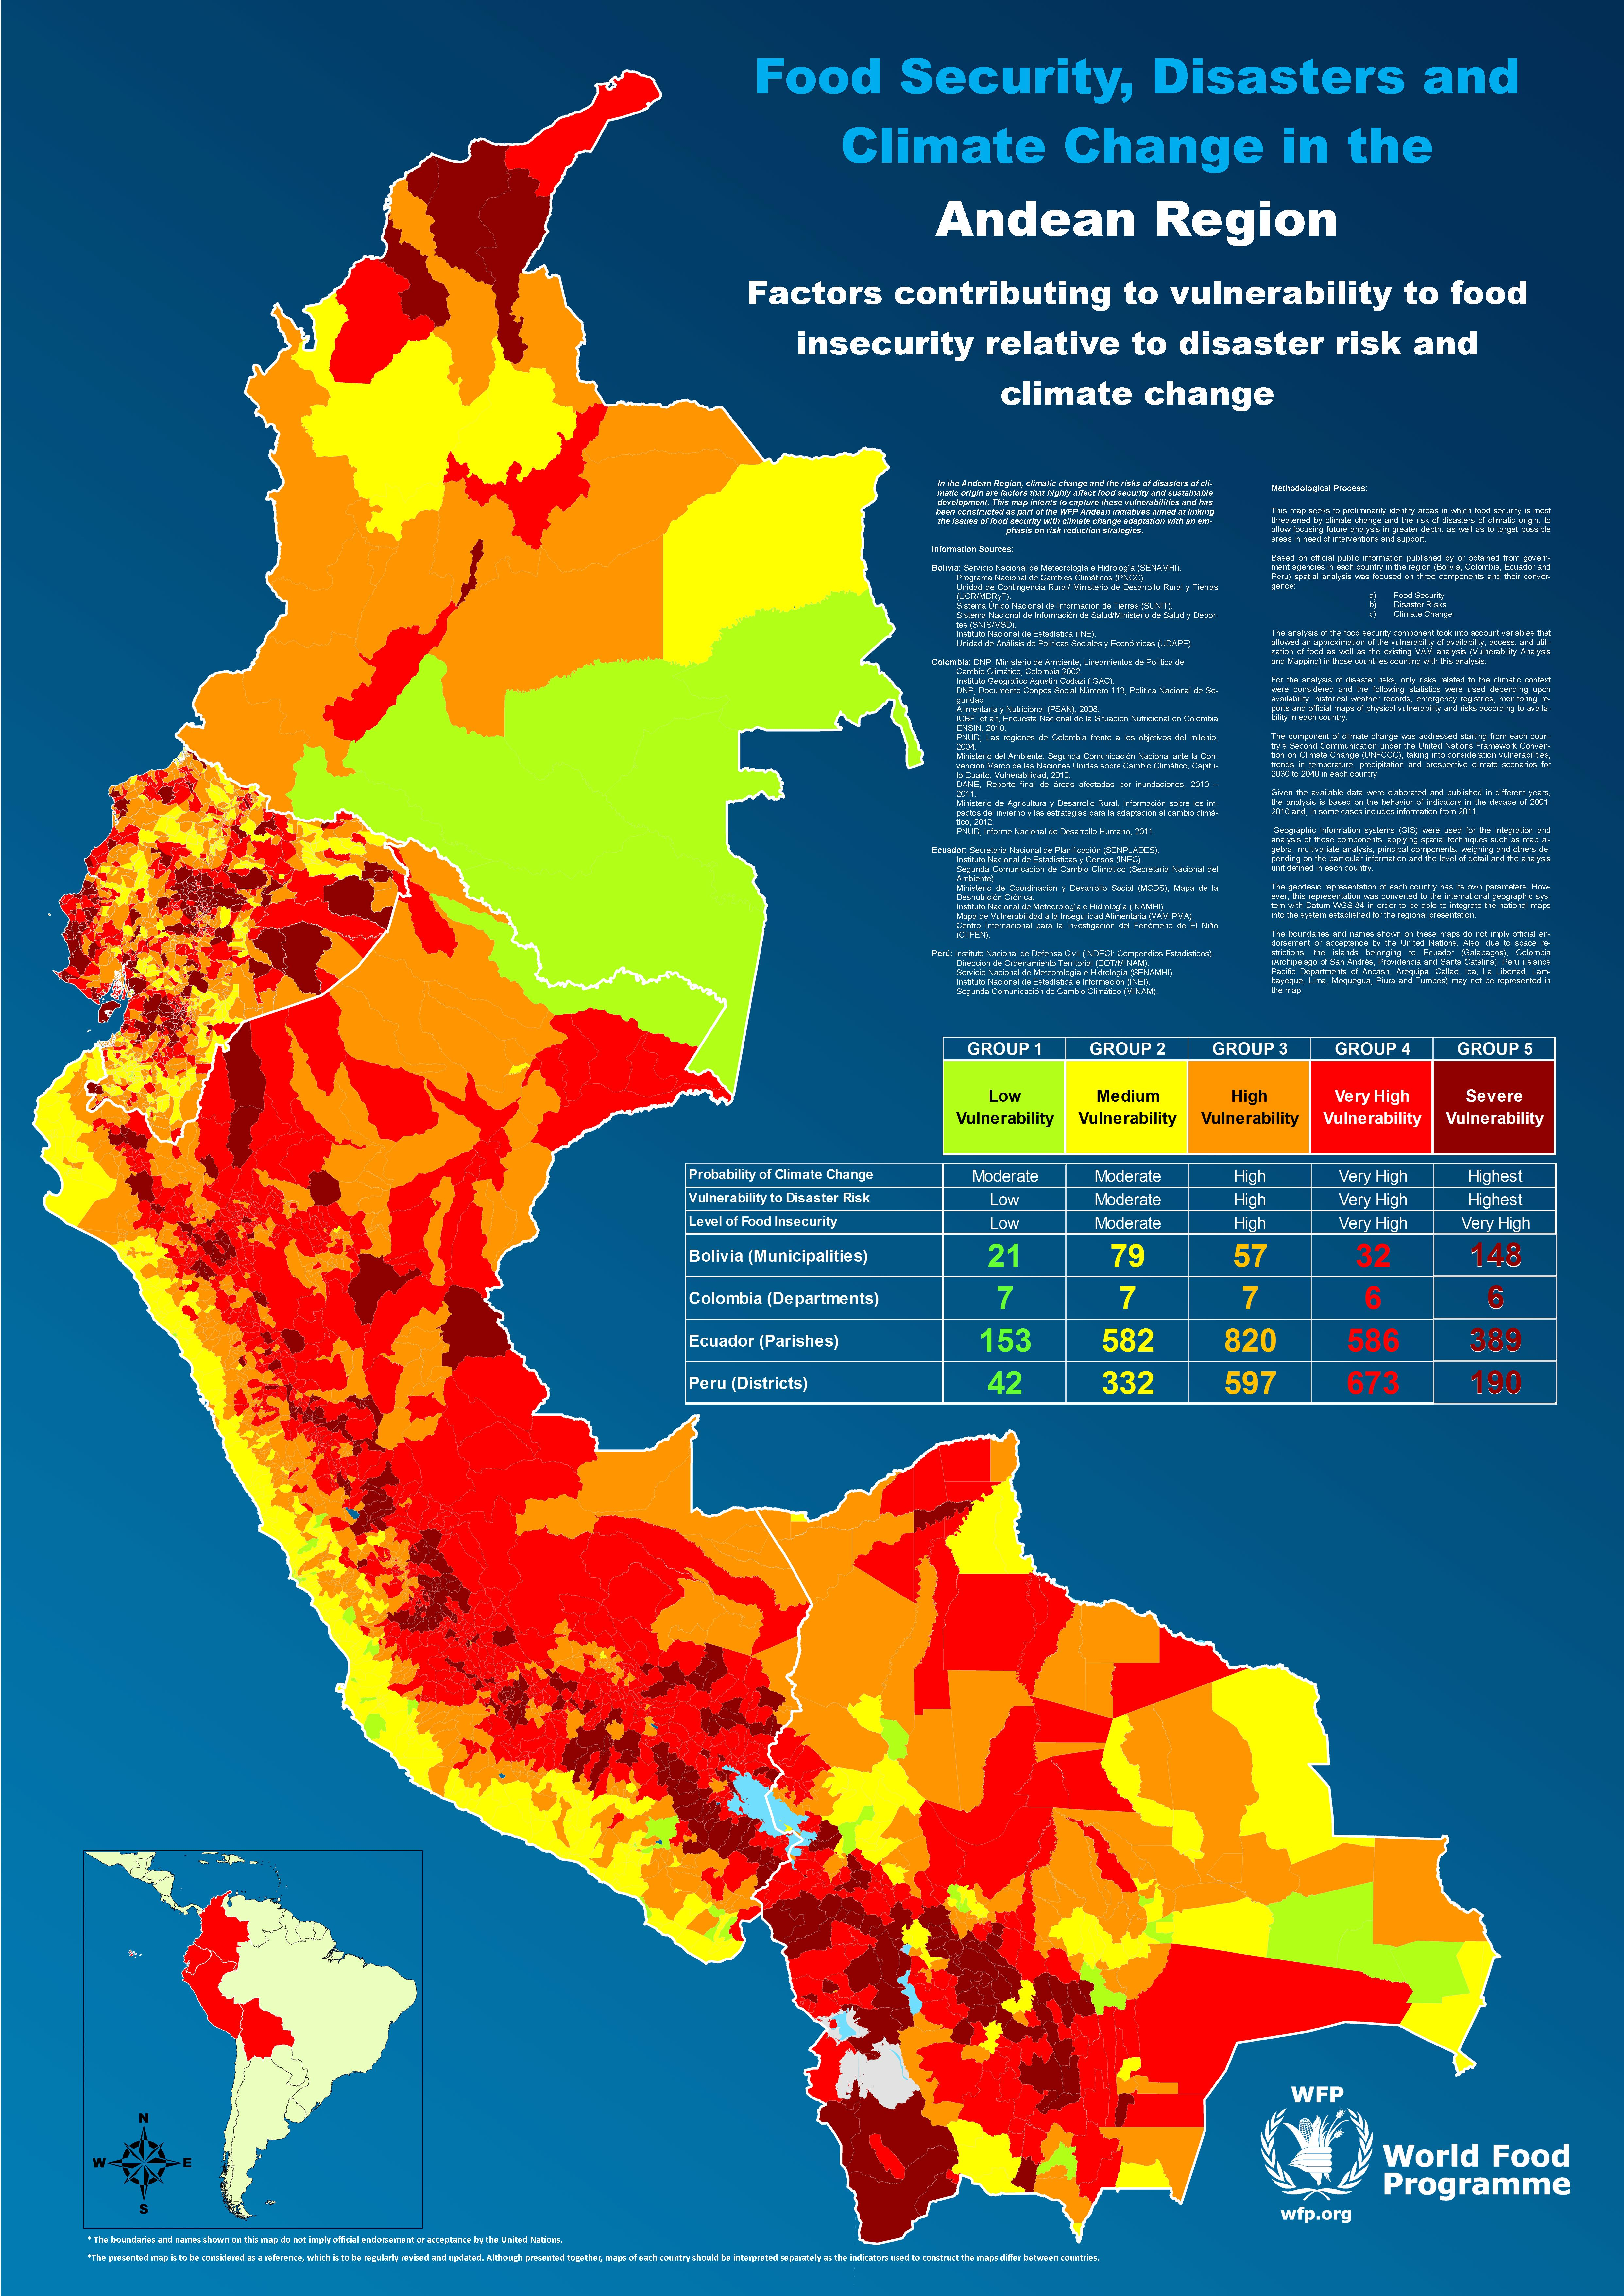 New Atlas Maps Out the Vulnerable Areas within the Andean Region